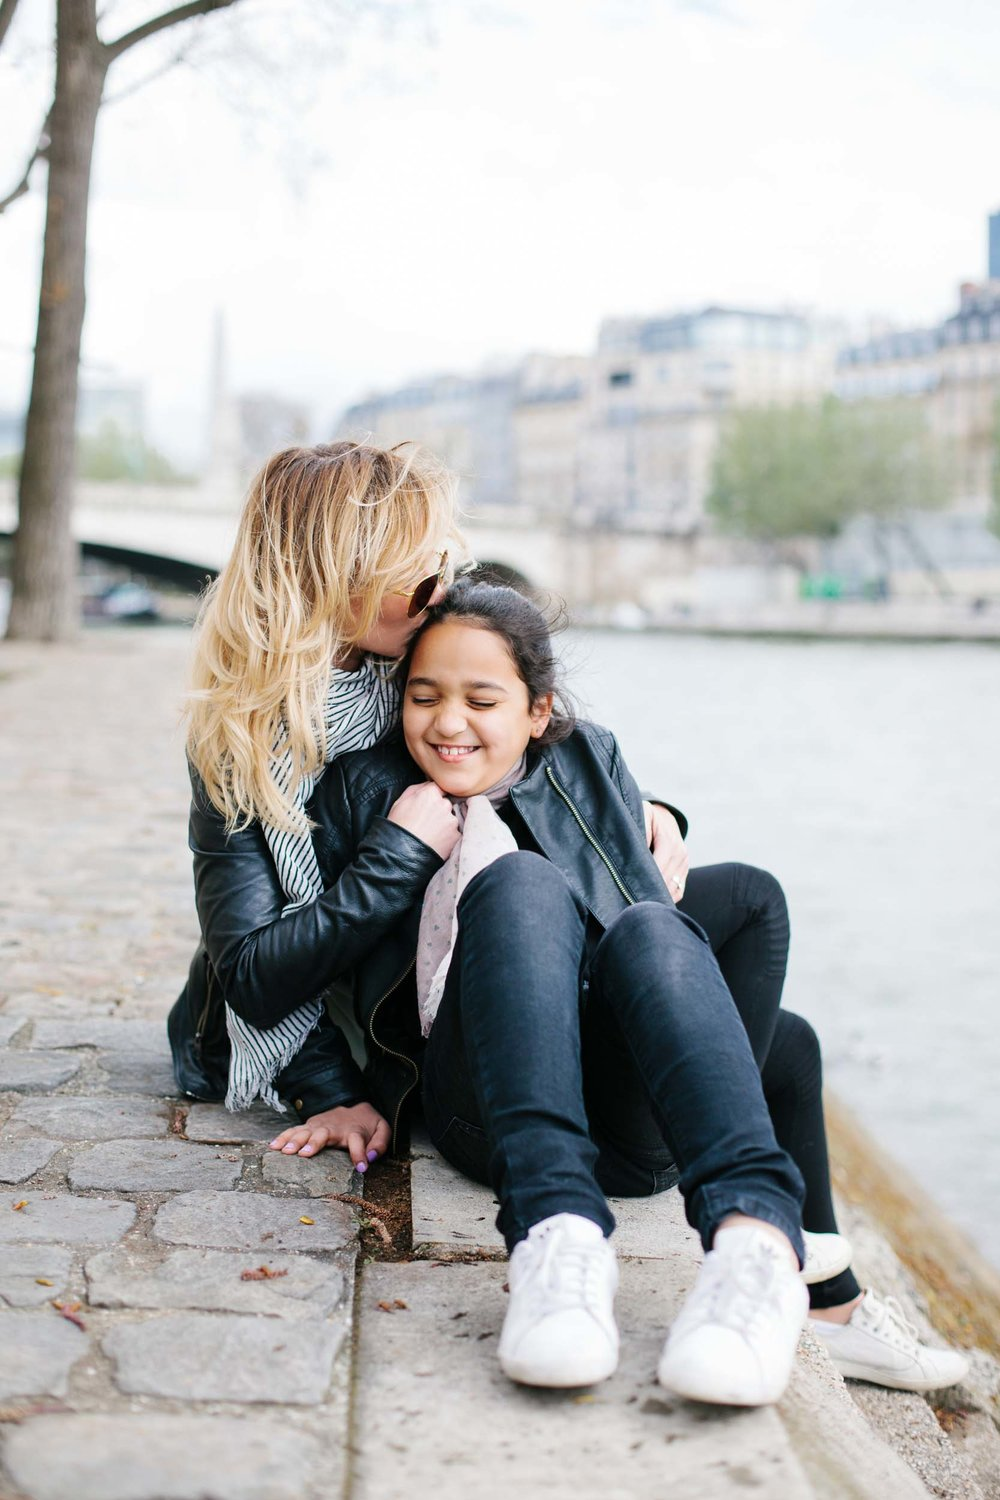 Click to see more of this adorable mother-daughter trip through London and Paris on the Flytographer blog! | Travel + Vacation Photographer | Family Vacations | Engagement Proposals | Honeymoons | Anniversary Gifts | Bachelorette Ideas | Solo Traveller Tips |  Flytographer captures your travel memories - everything from surprise proposals, honeymoons, family vacations, and more. So often you are missing out of your own photos! Flytographer solves that problem for you. Our photographers also act as informal tour guides and provide fun local tips to our customers, showing them an area of a city they may not have explored without Flytographer. Book your photographer at 1.888.211.7178 or visit our website at www.flytographer.com/book